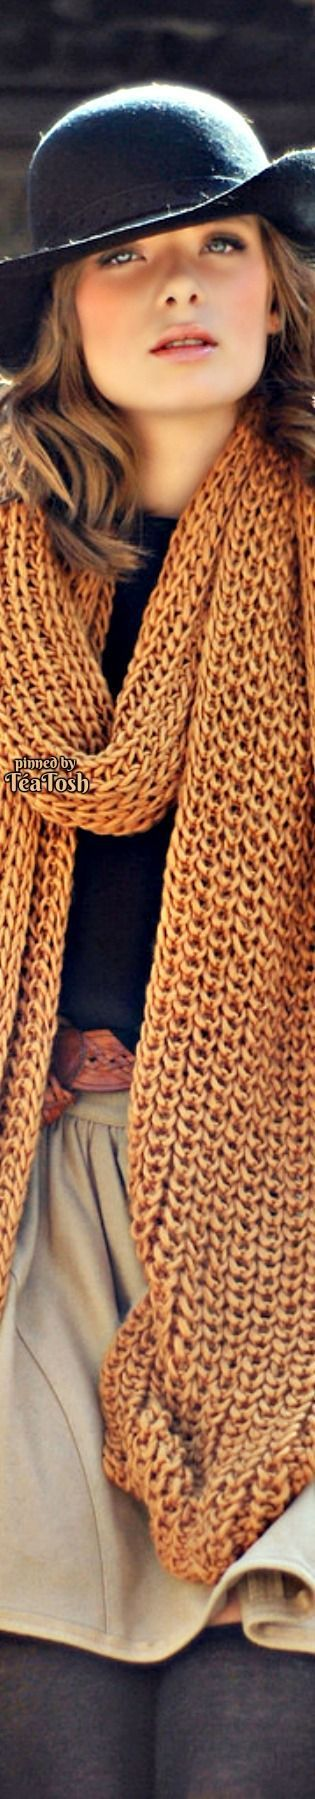 ❇Téa Tosh❇ Out come the fall knits…